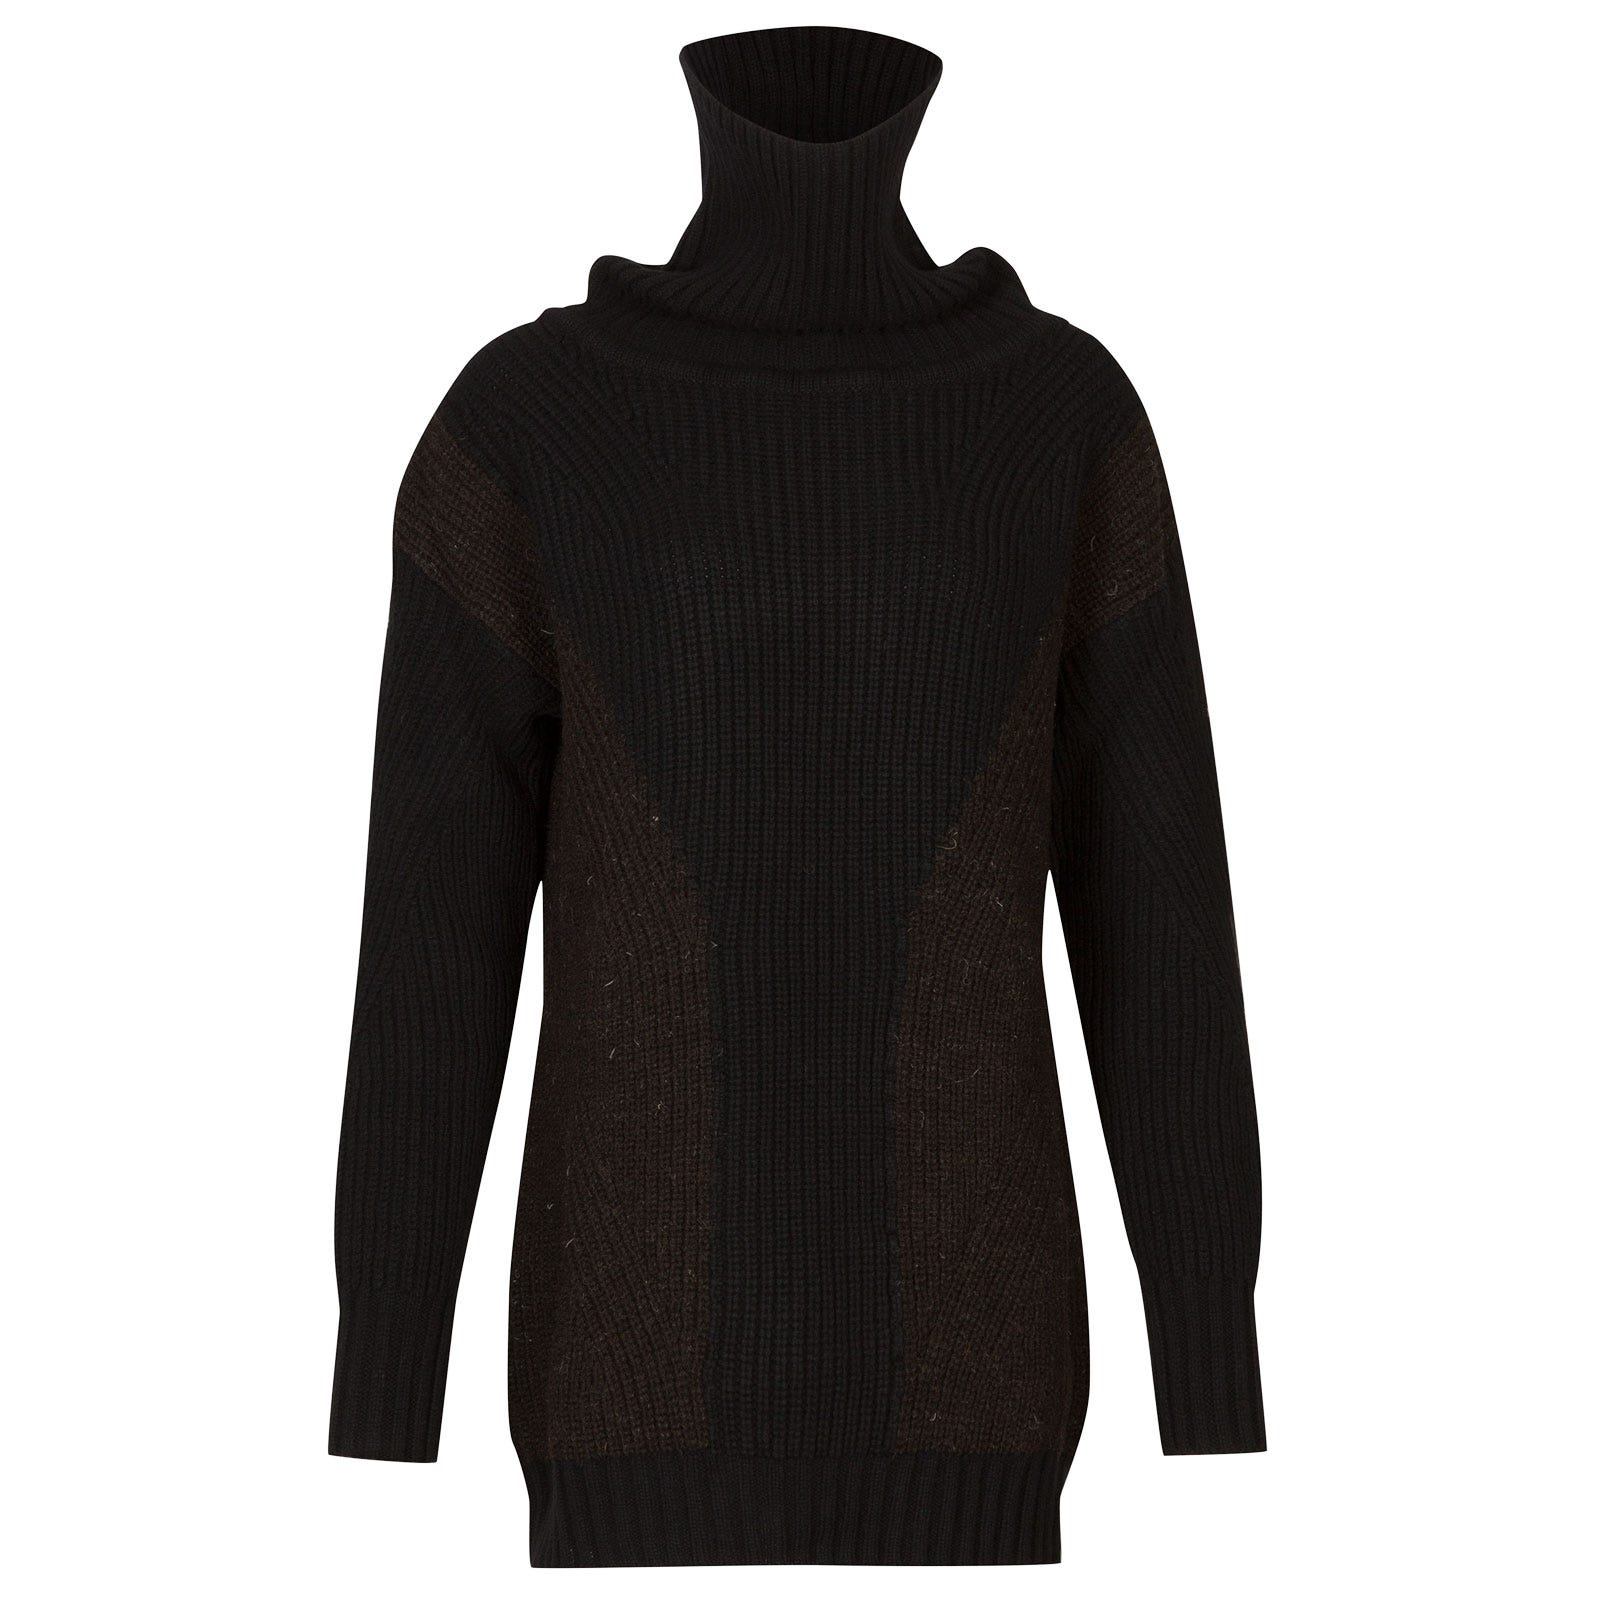 John Smedley wyedale British Wool & Cashmere Wool Sweater in Black-S